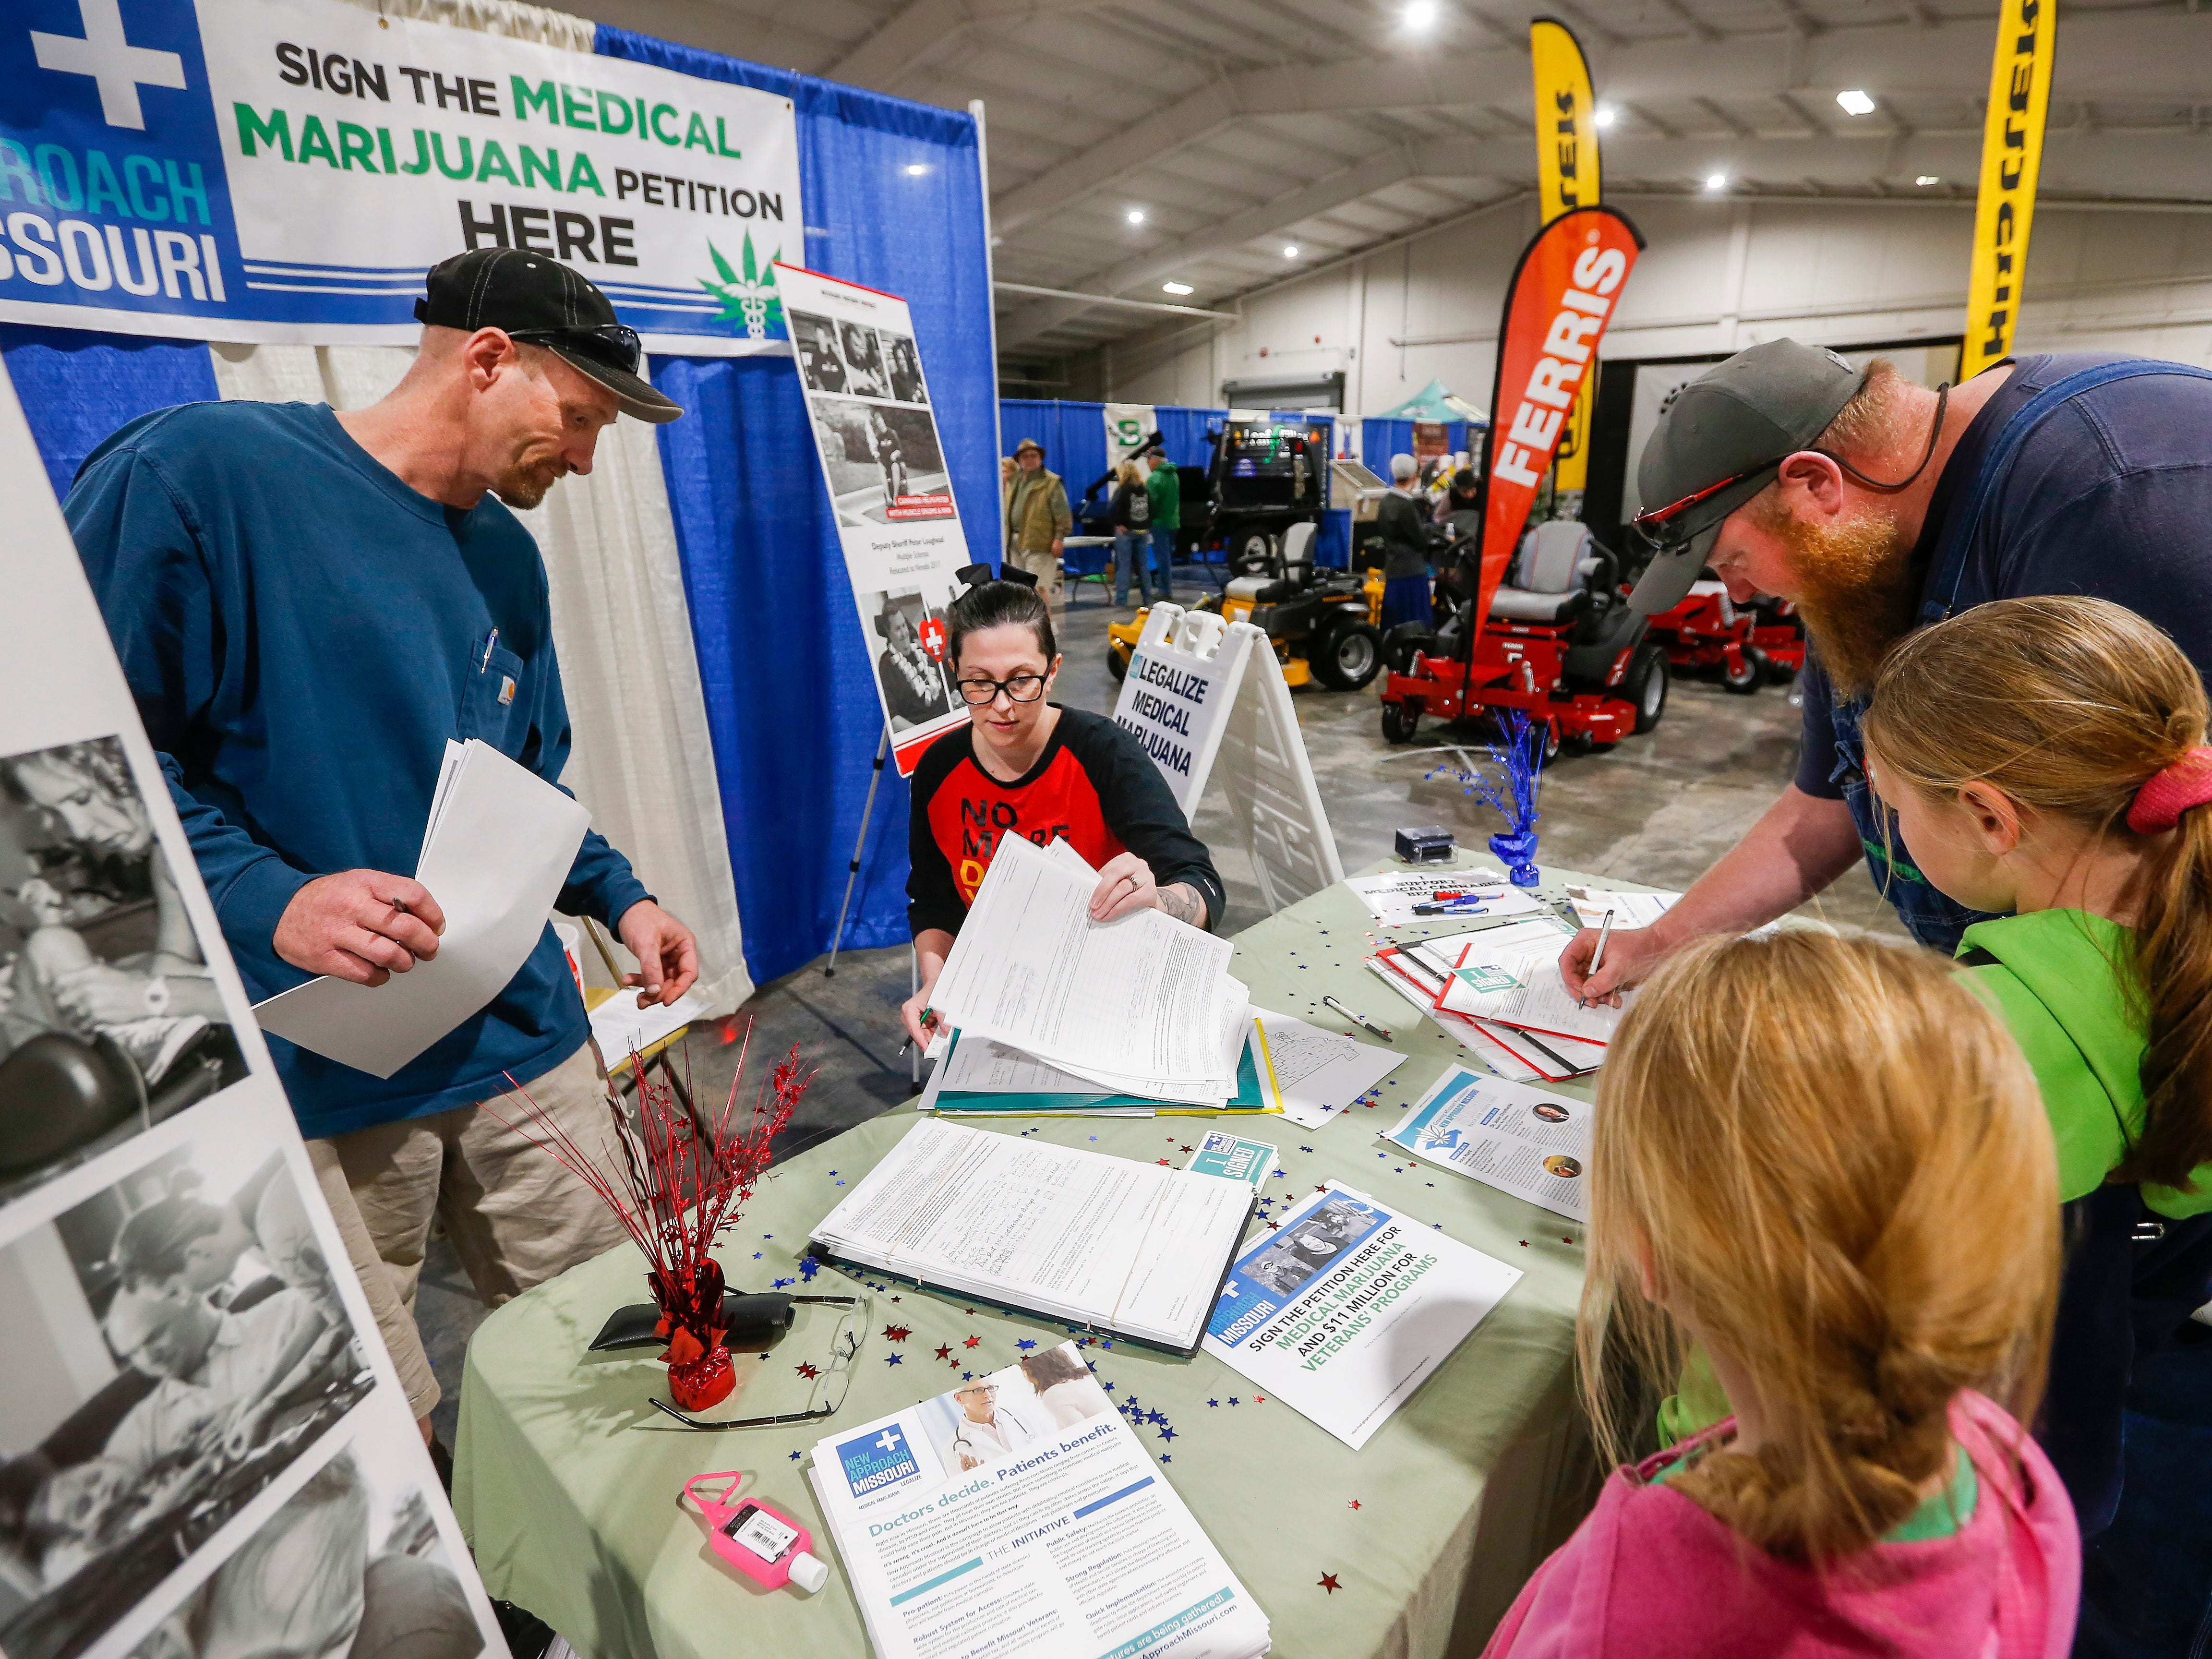 Ashley Markum and Josh Loftis notarize signatures as Matthew Dickinson, of Seymour, signs the petition for New Approach Missouri to get the medical marijuana amendment on the November ballot as his daughters Lexi Dickinson, 9, center, and Kassitie Dickinson, 6, watch during the Ozark Spring Roundup at the Ozark Empire Fairgrounds on Saturday, March 24, 2018.